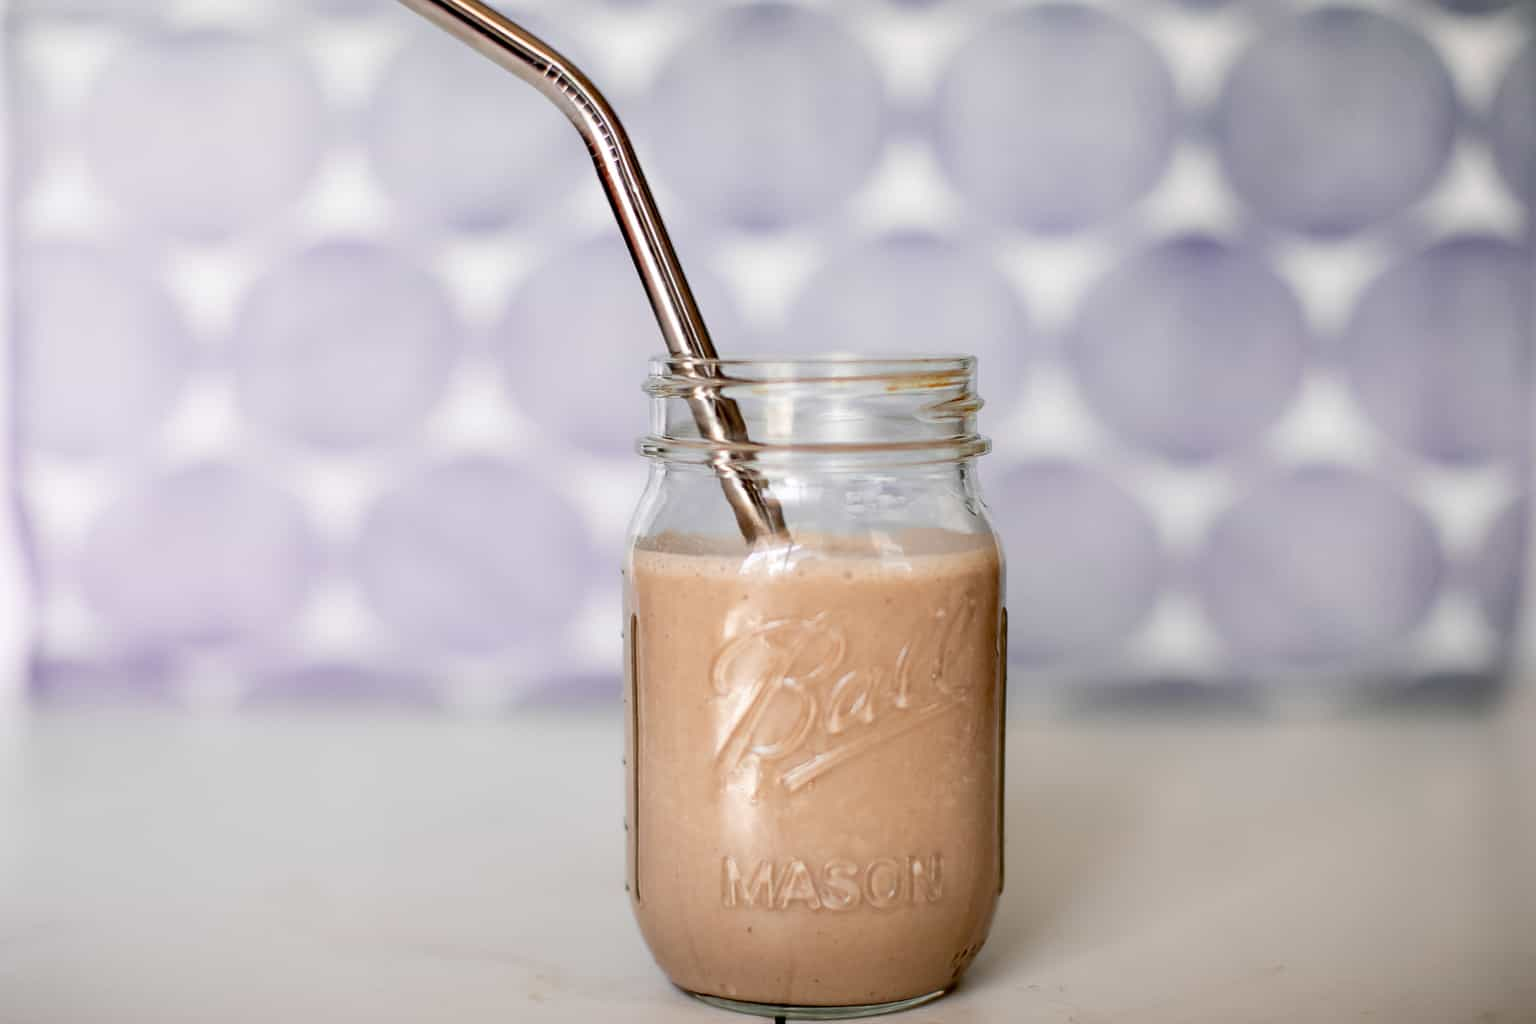 Prepared chocolate peanut butter banana smoothie recipe in a mason jar